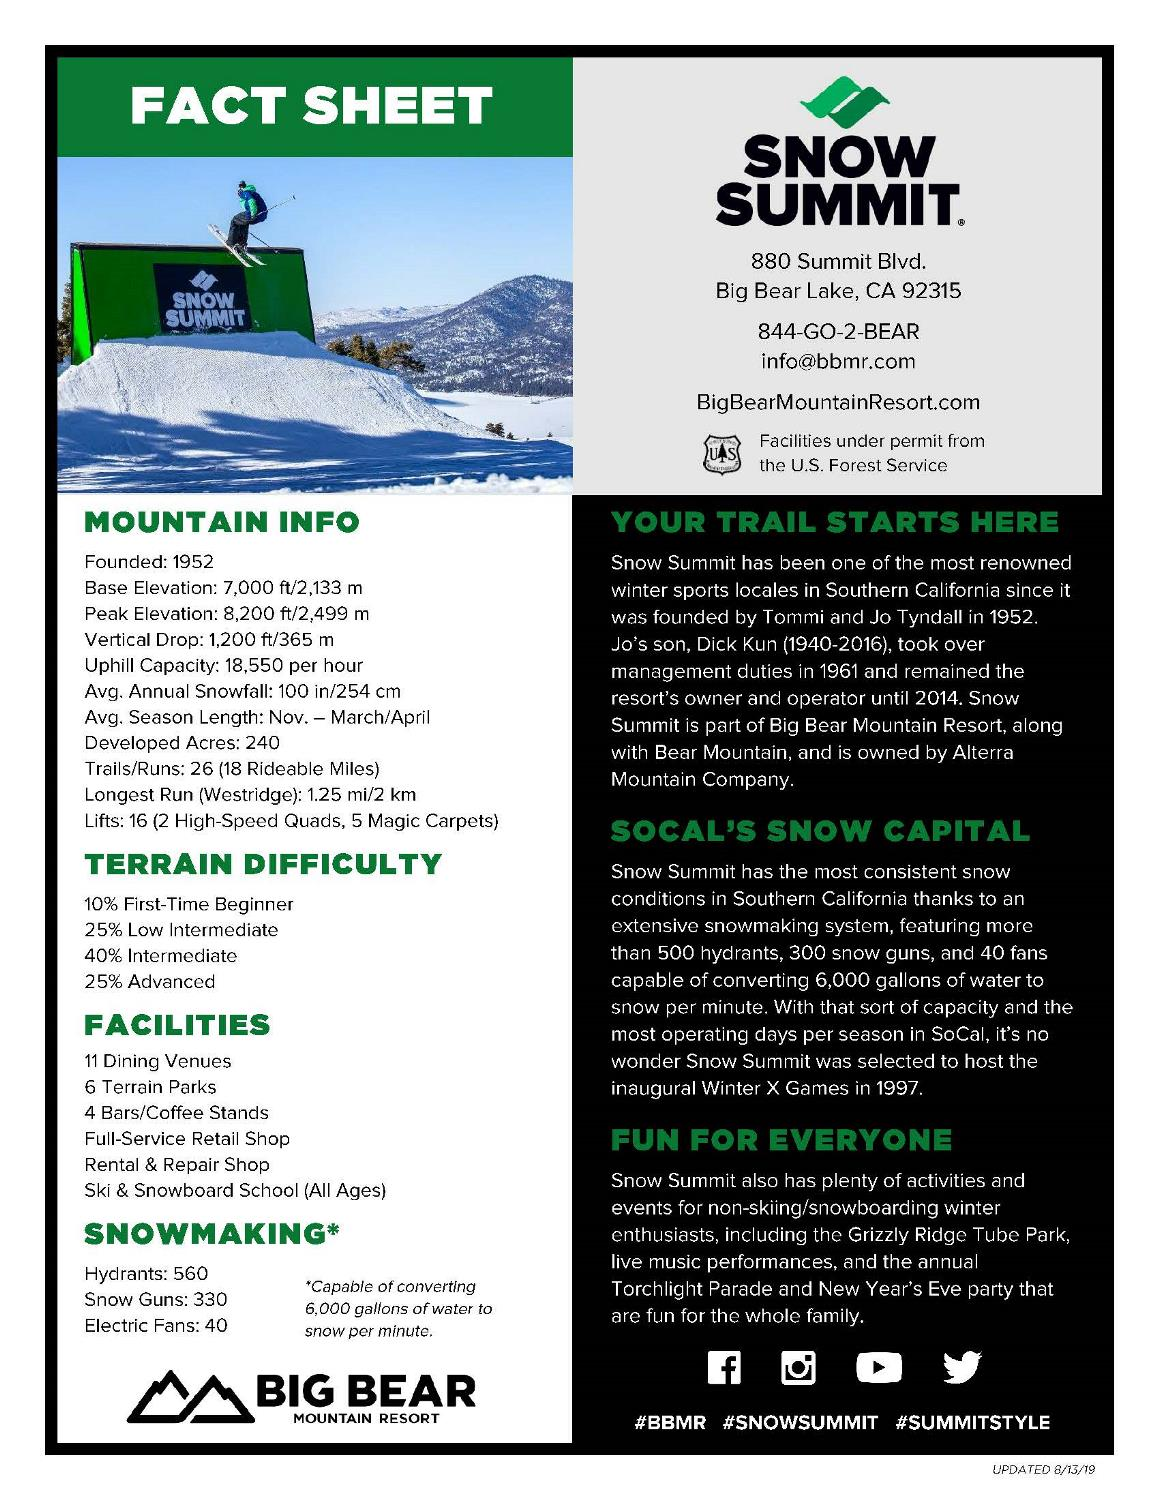 snow-summit-fact-sheet-2019-20-6.jpg